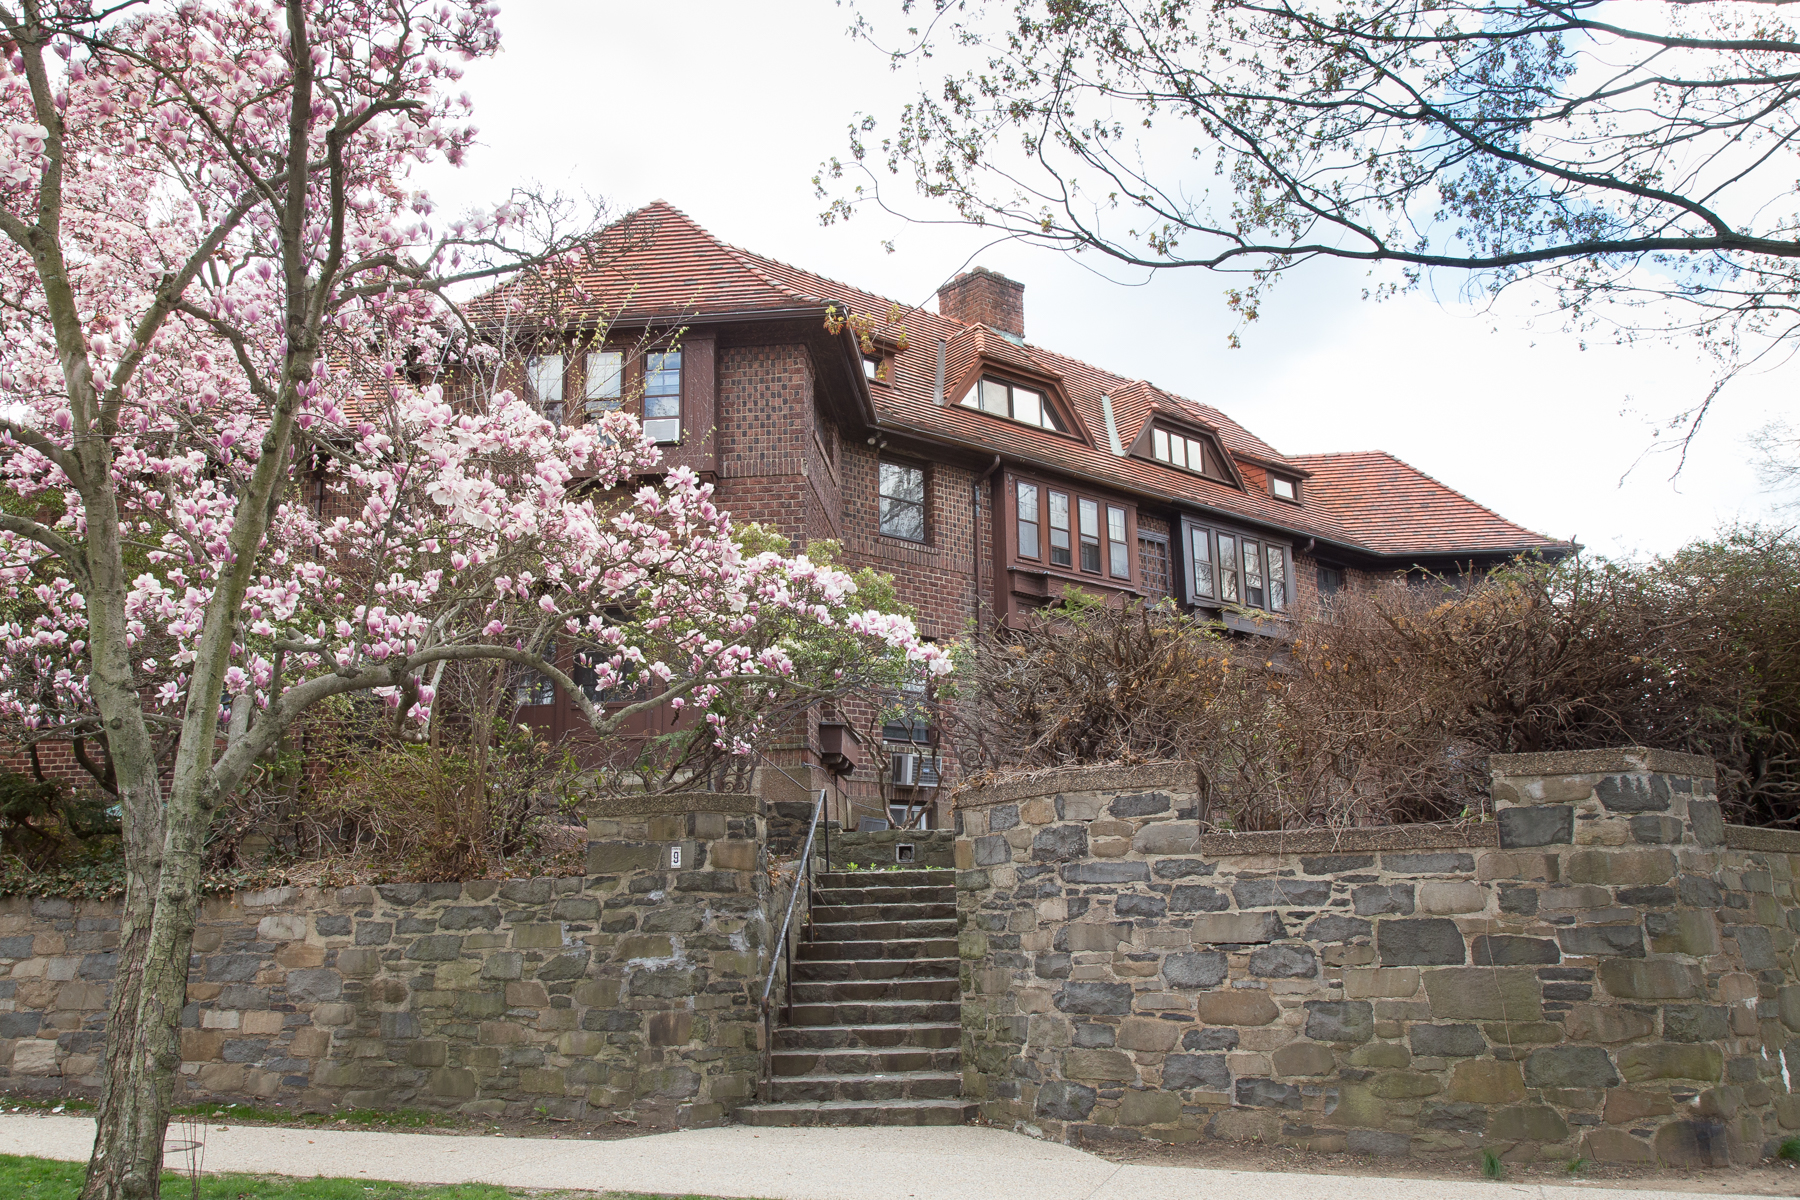 """Single Family Home for Sale at """"PARK VISTAS"""" 9 Markwood Road, Forest Hills Gardens, Forest Hills, New York 11375 United States"""